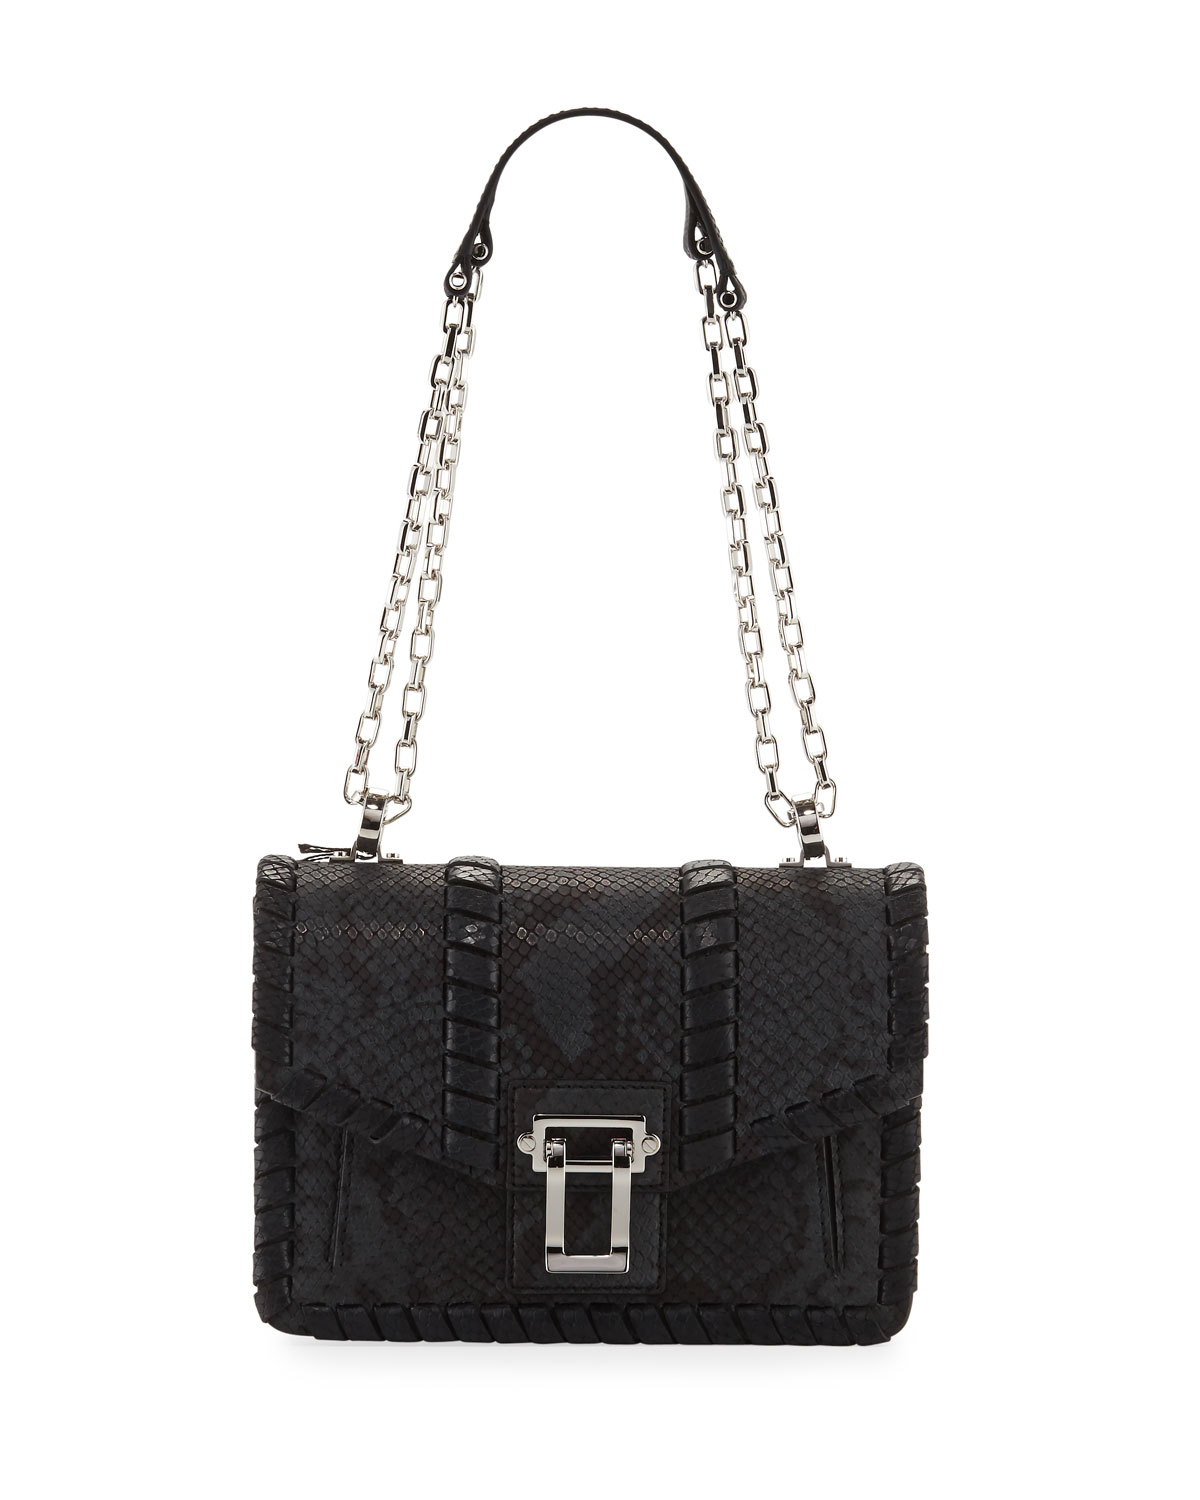 Proenza Schouler Hava Chain Leather Crossbody Bag d1bf8767ec3f3